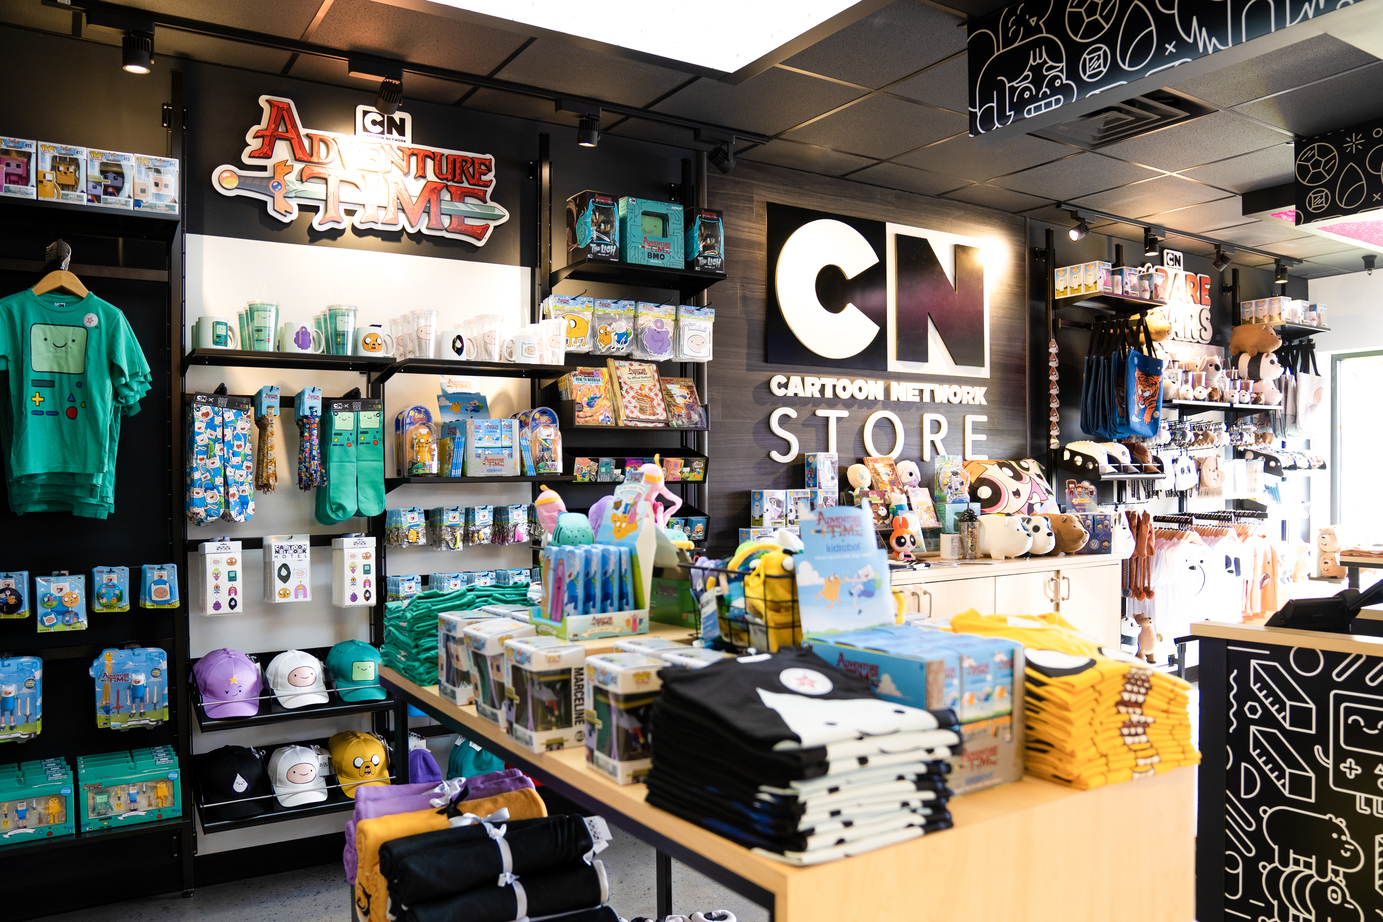 Cartoon Network merchandise in front of the registers at the Cartoon Network Store